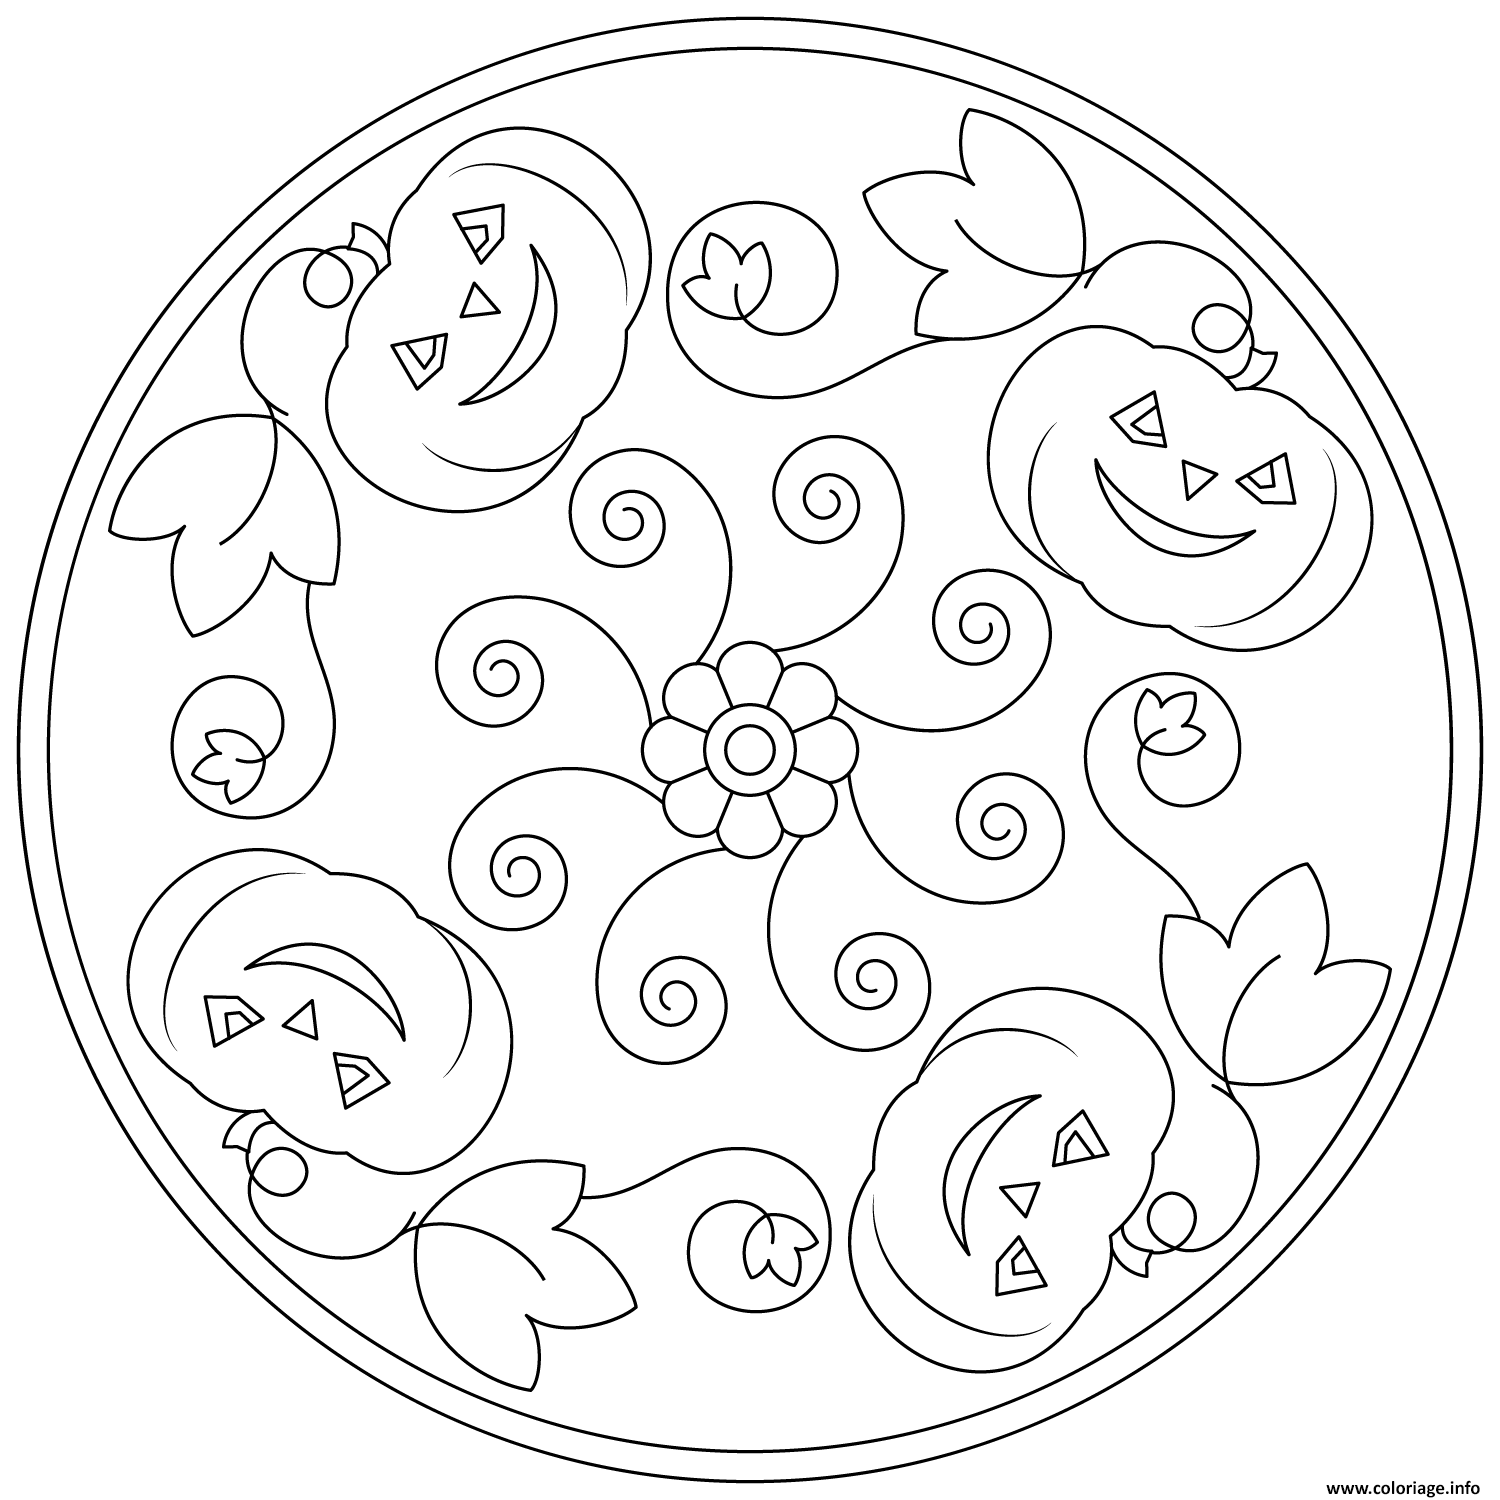 Coloriage Halloween Mandala Facile Citrouille Simple Dessin à Imprimer